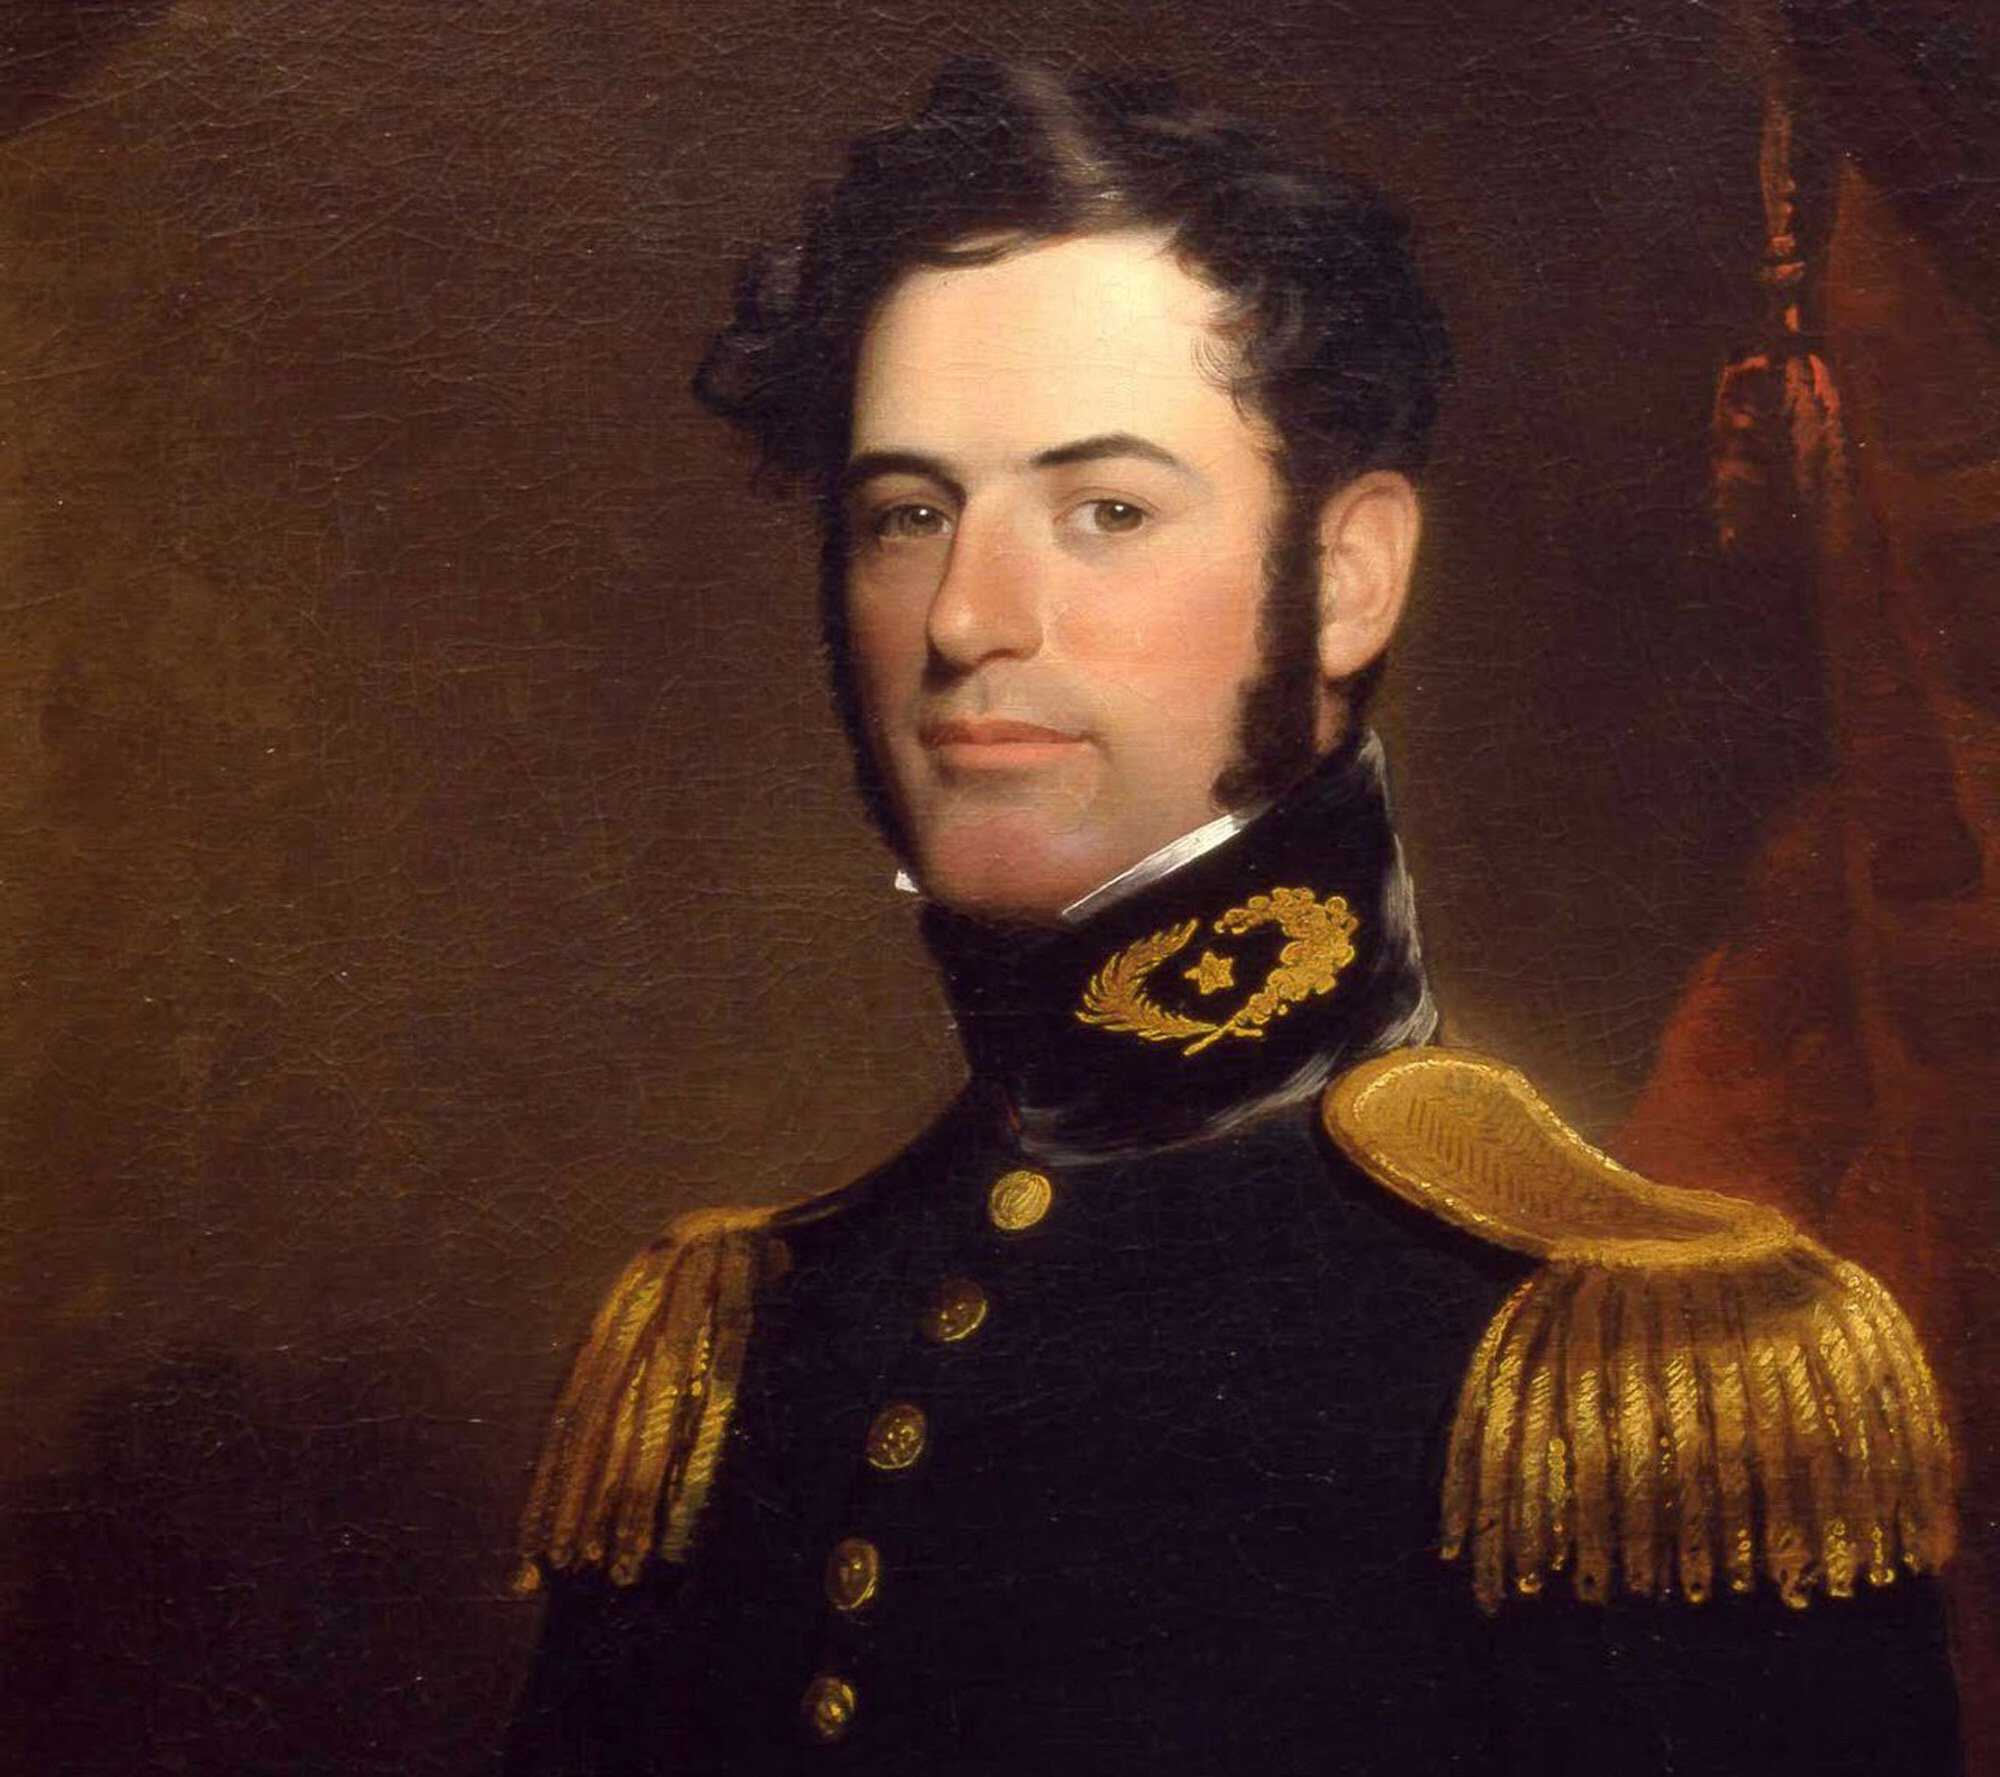 a biography of robert edward lee Lee, robert edward (1807-1870), american soldier, general in the confederate states army, was the youngest son of major-general henry lee.